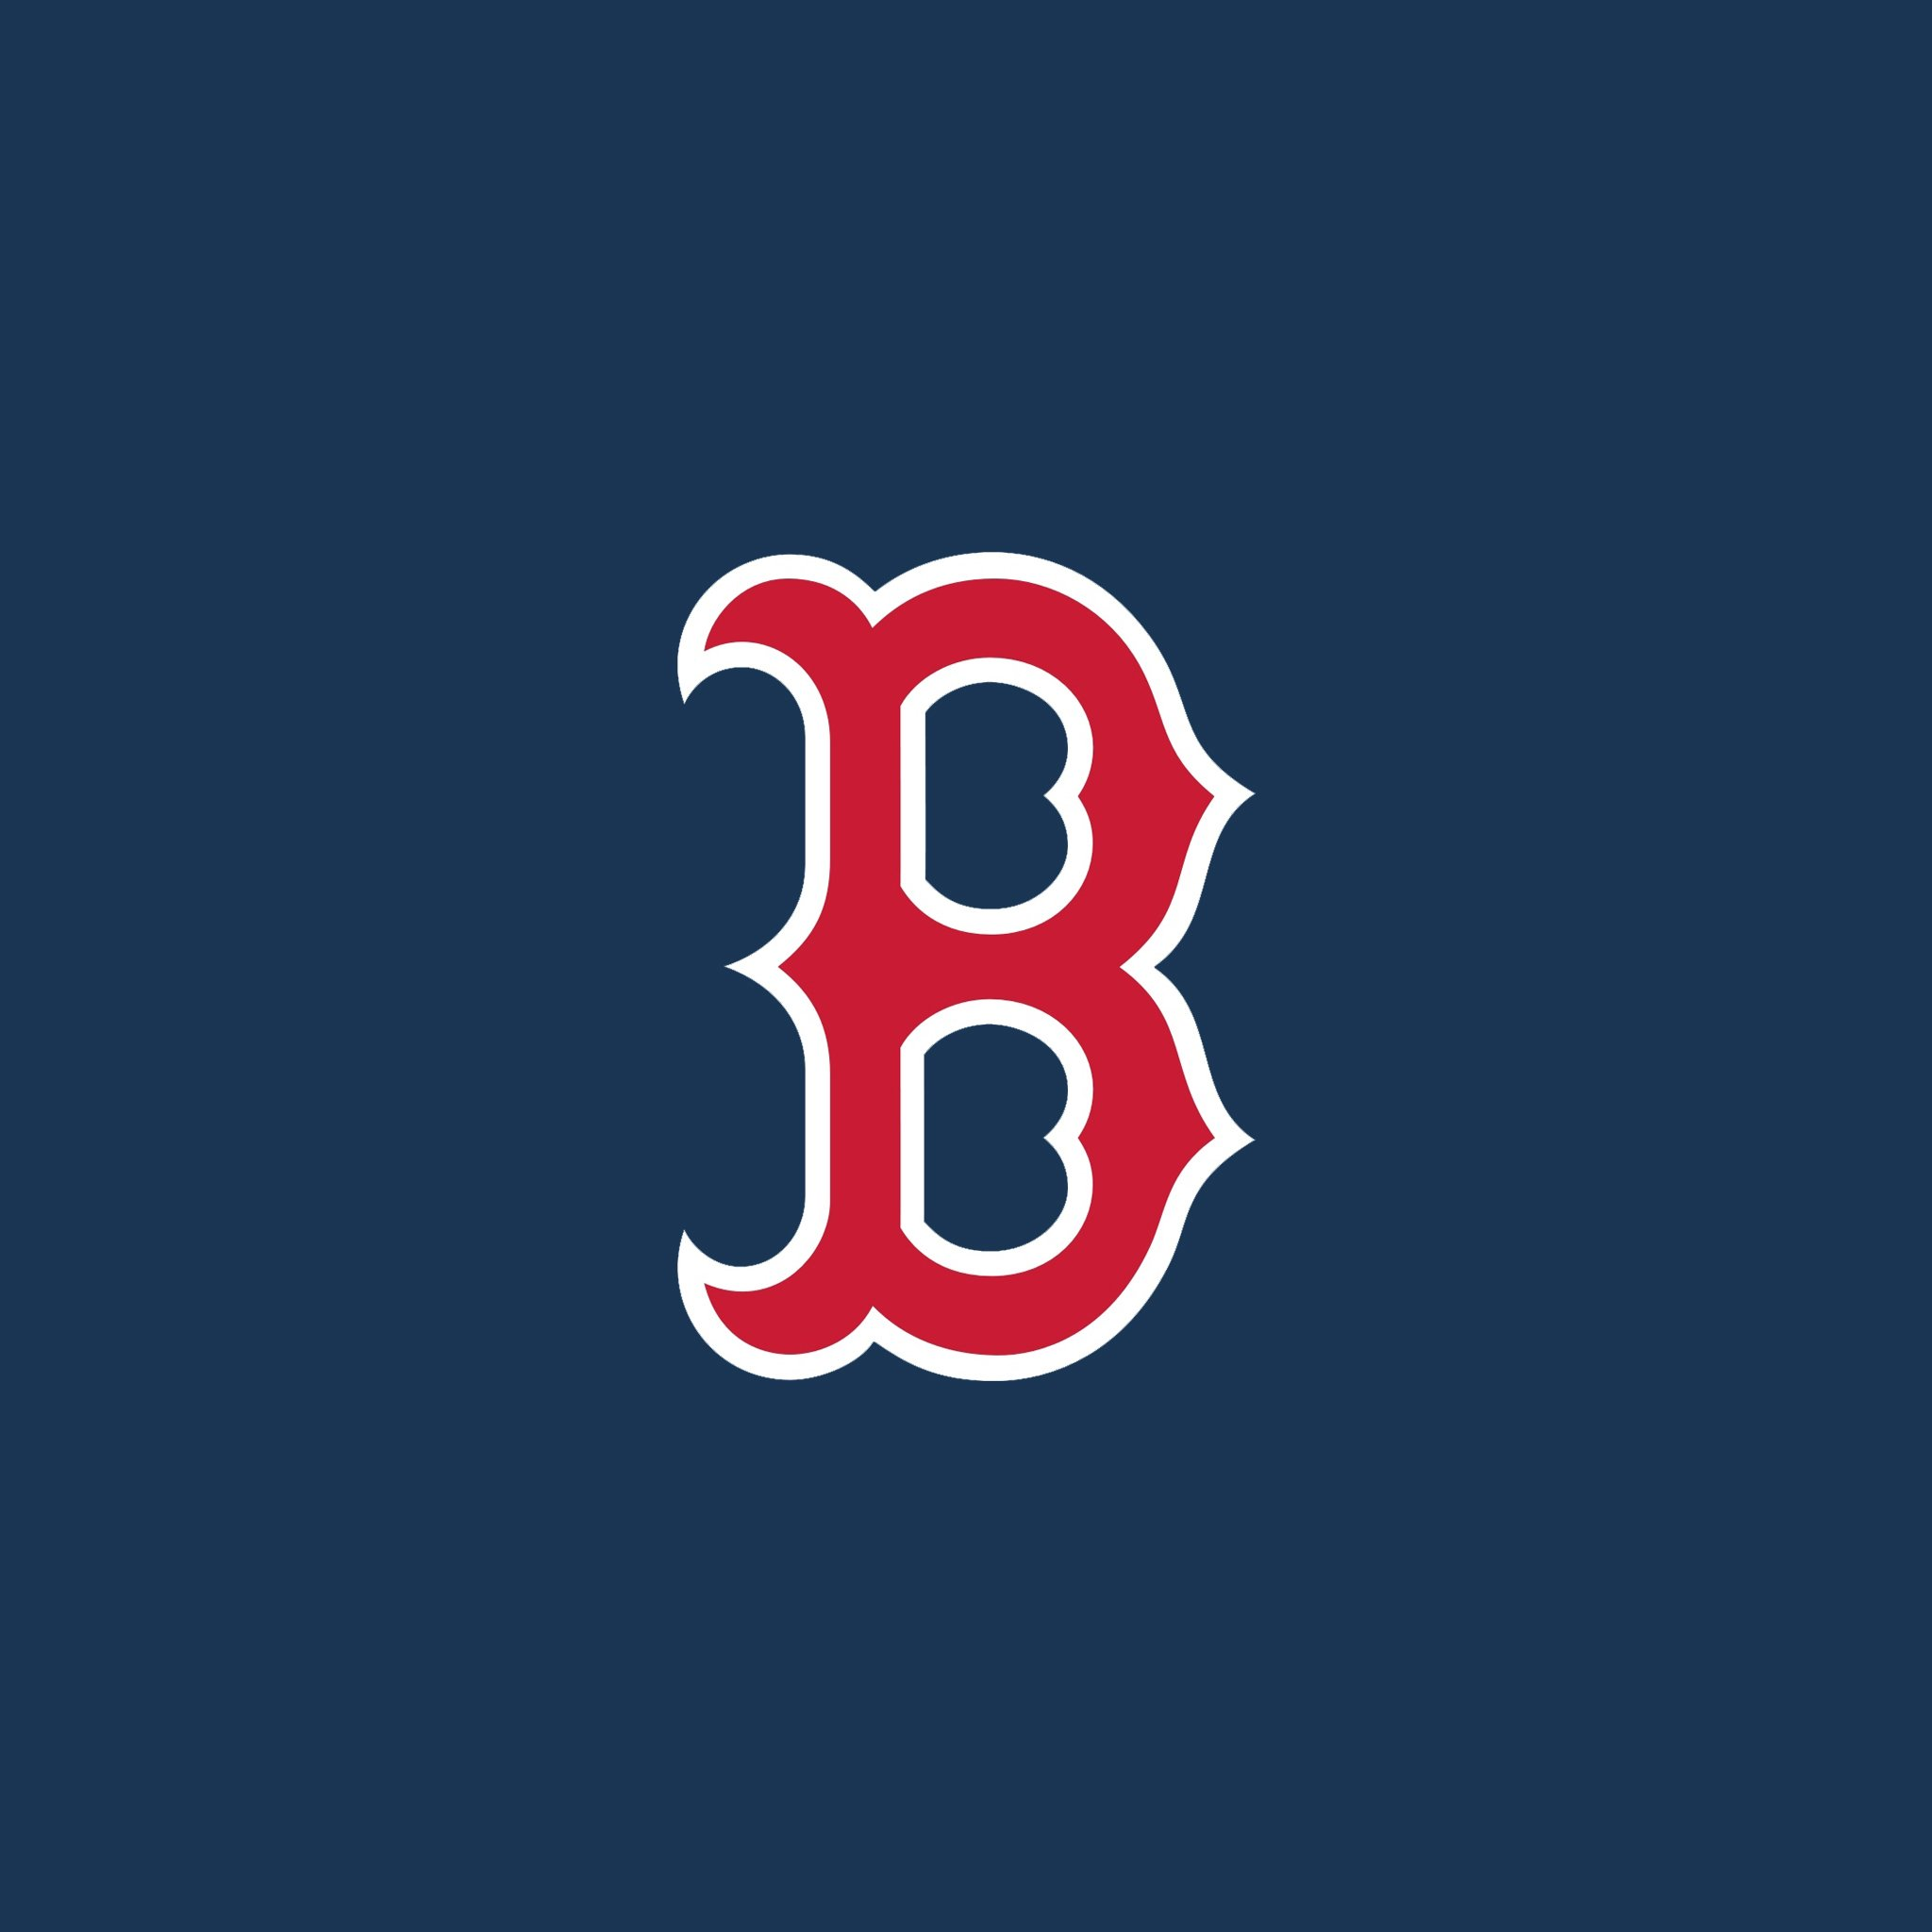 2013 Boston Red Sox Wallpaper 33 27013 Images HD Wallpapers wallfoy 2048x2048